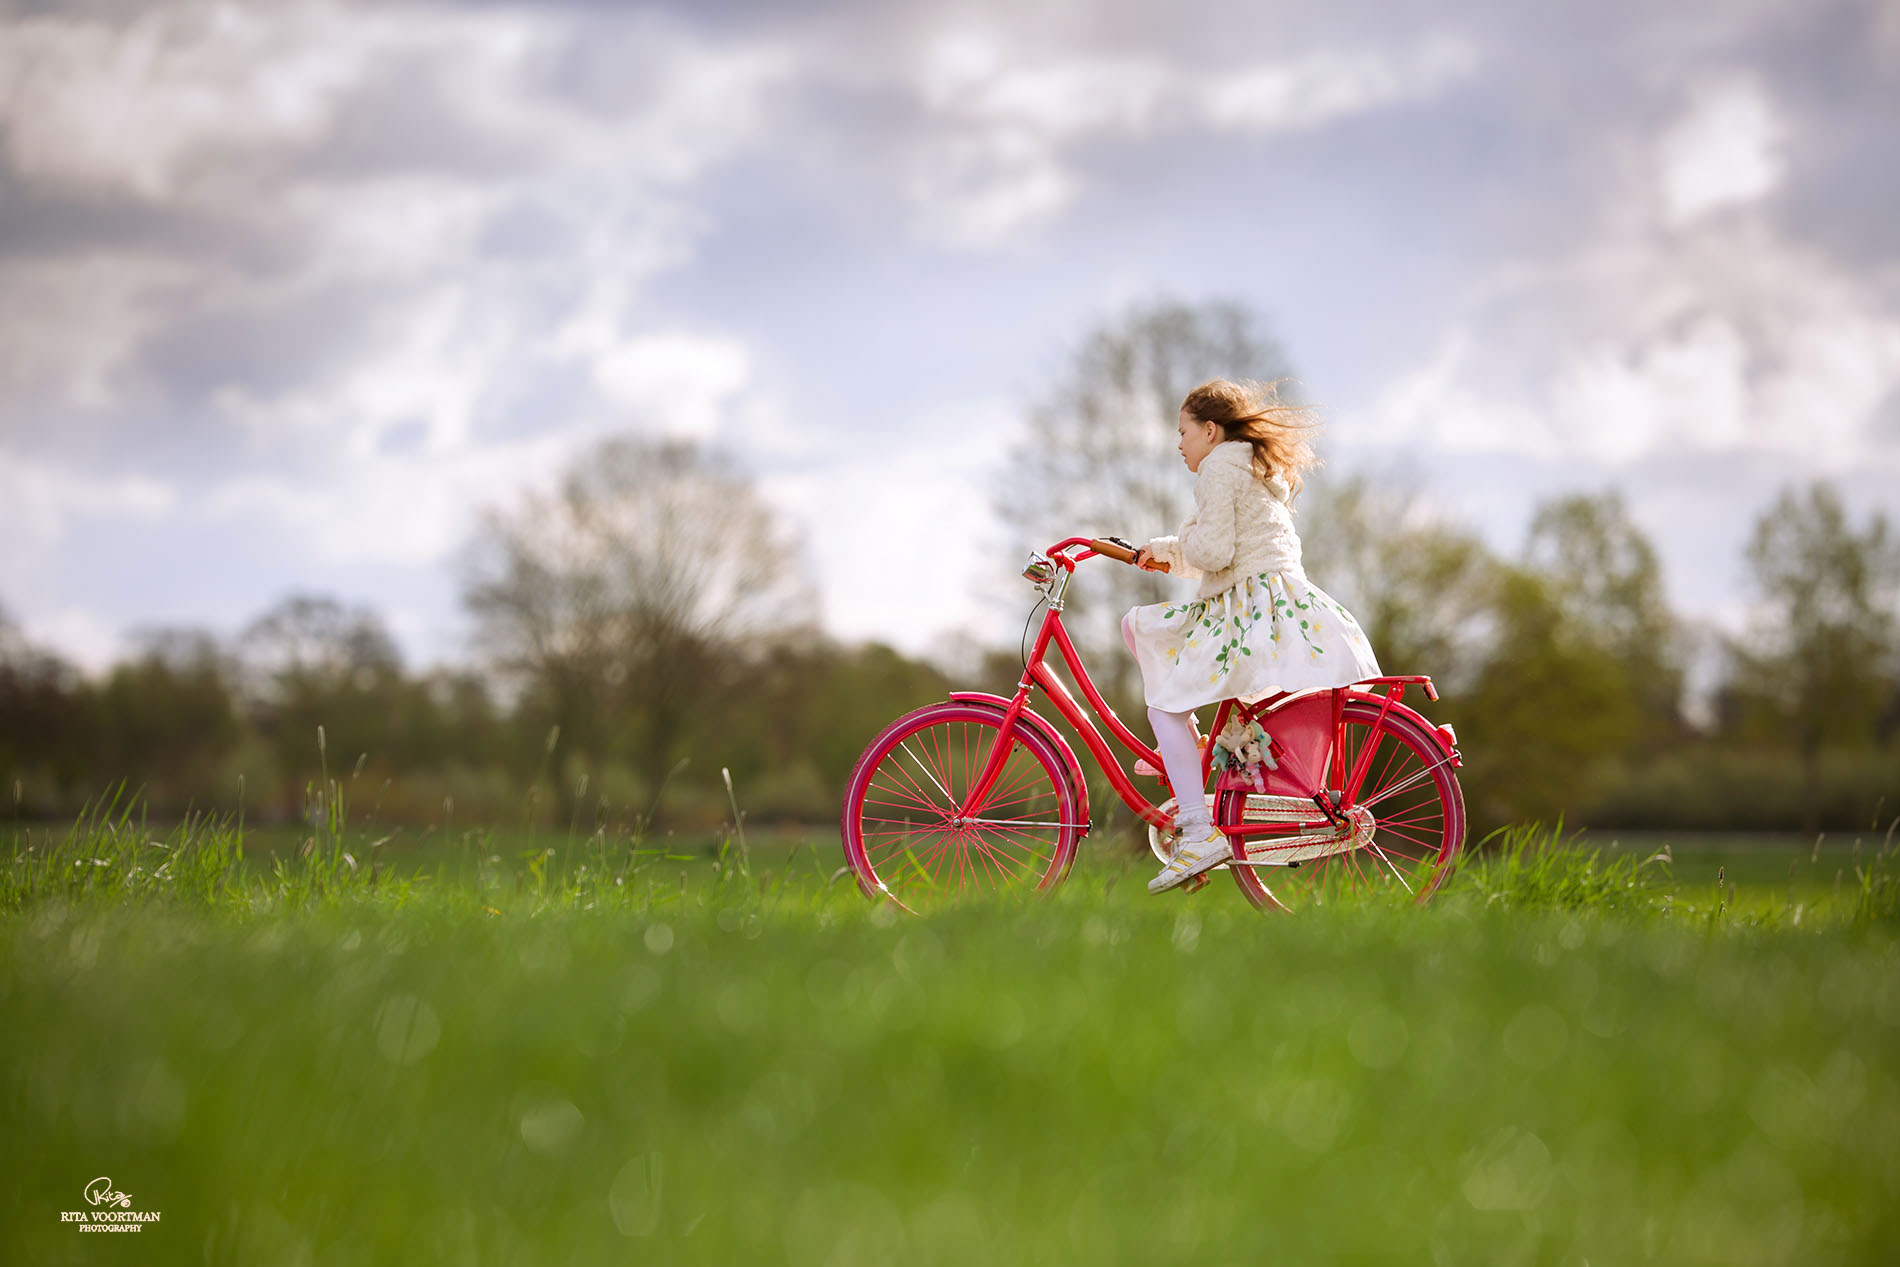 02 bicycle-in-holland-2-by-ritavoortmanphotography